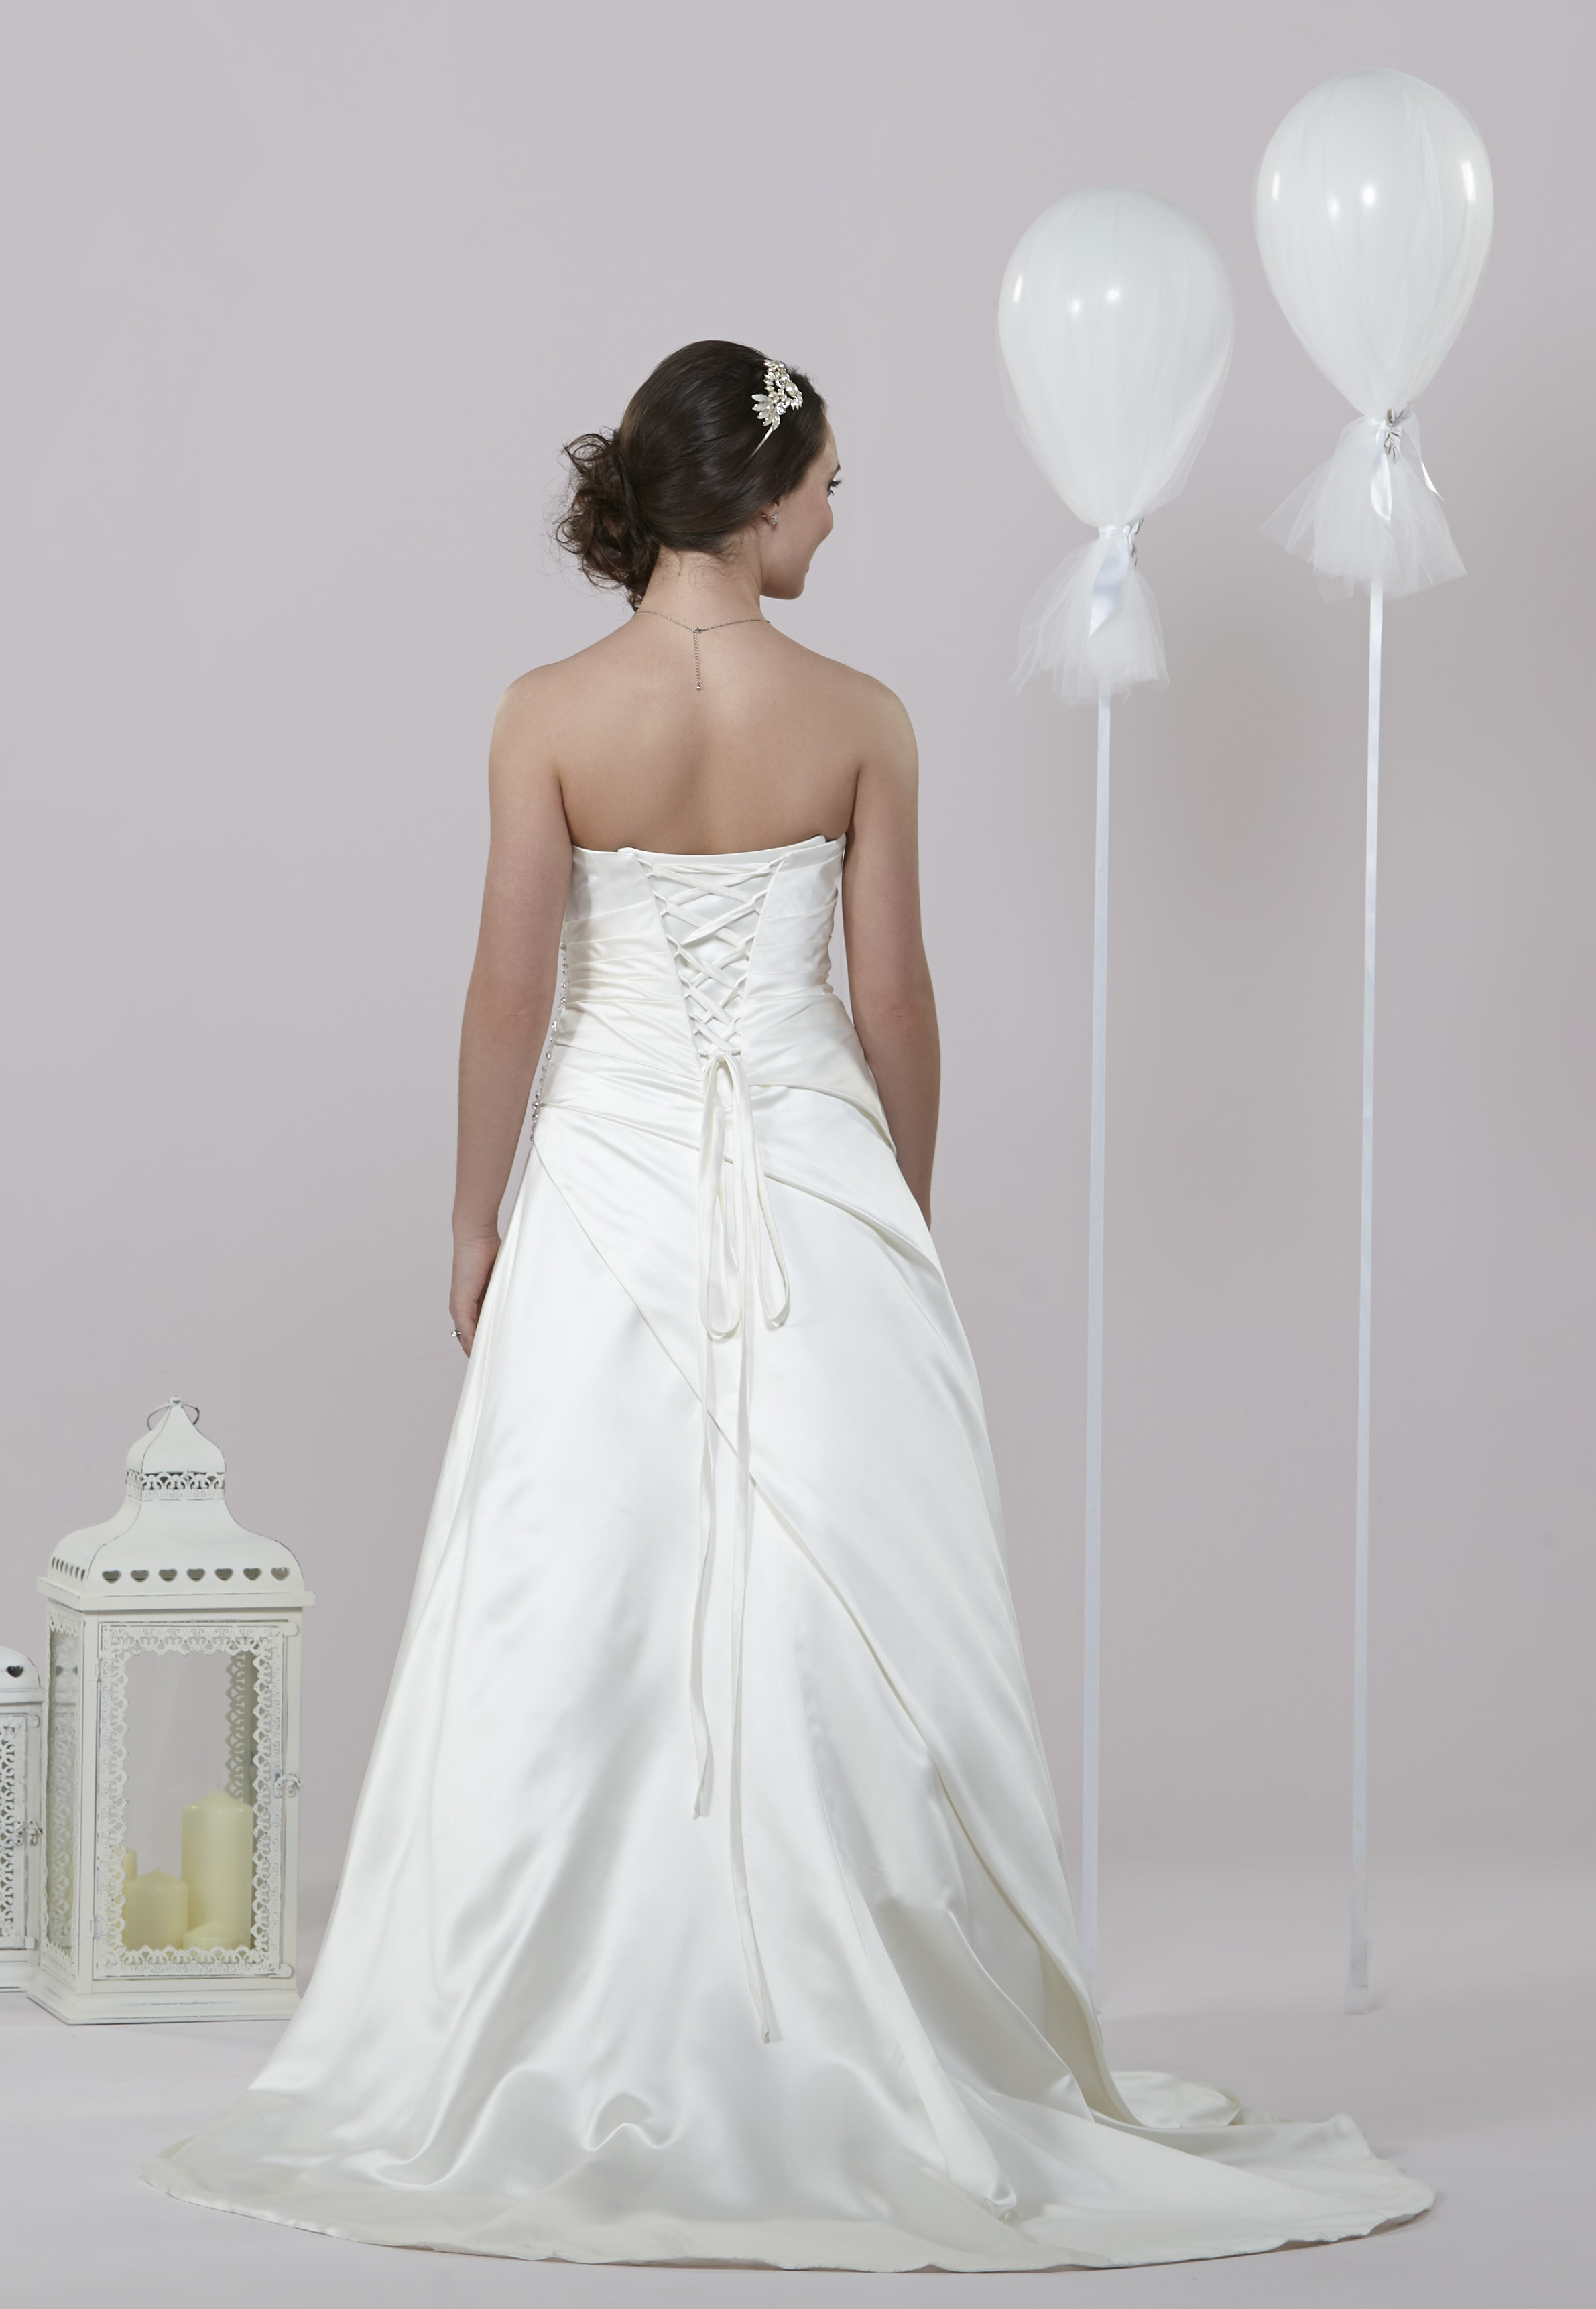 Daisy by alexia wedding dresses mirfield west yorkshire for Daisy lace wedding dress